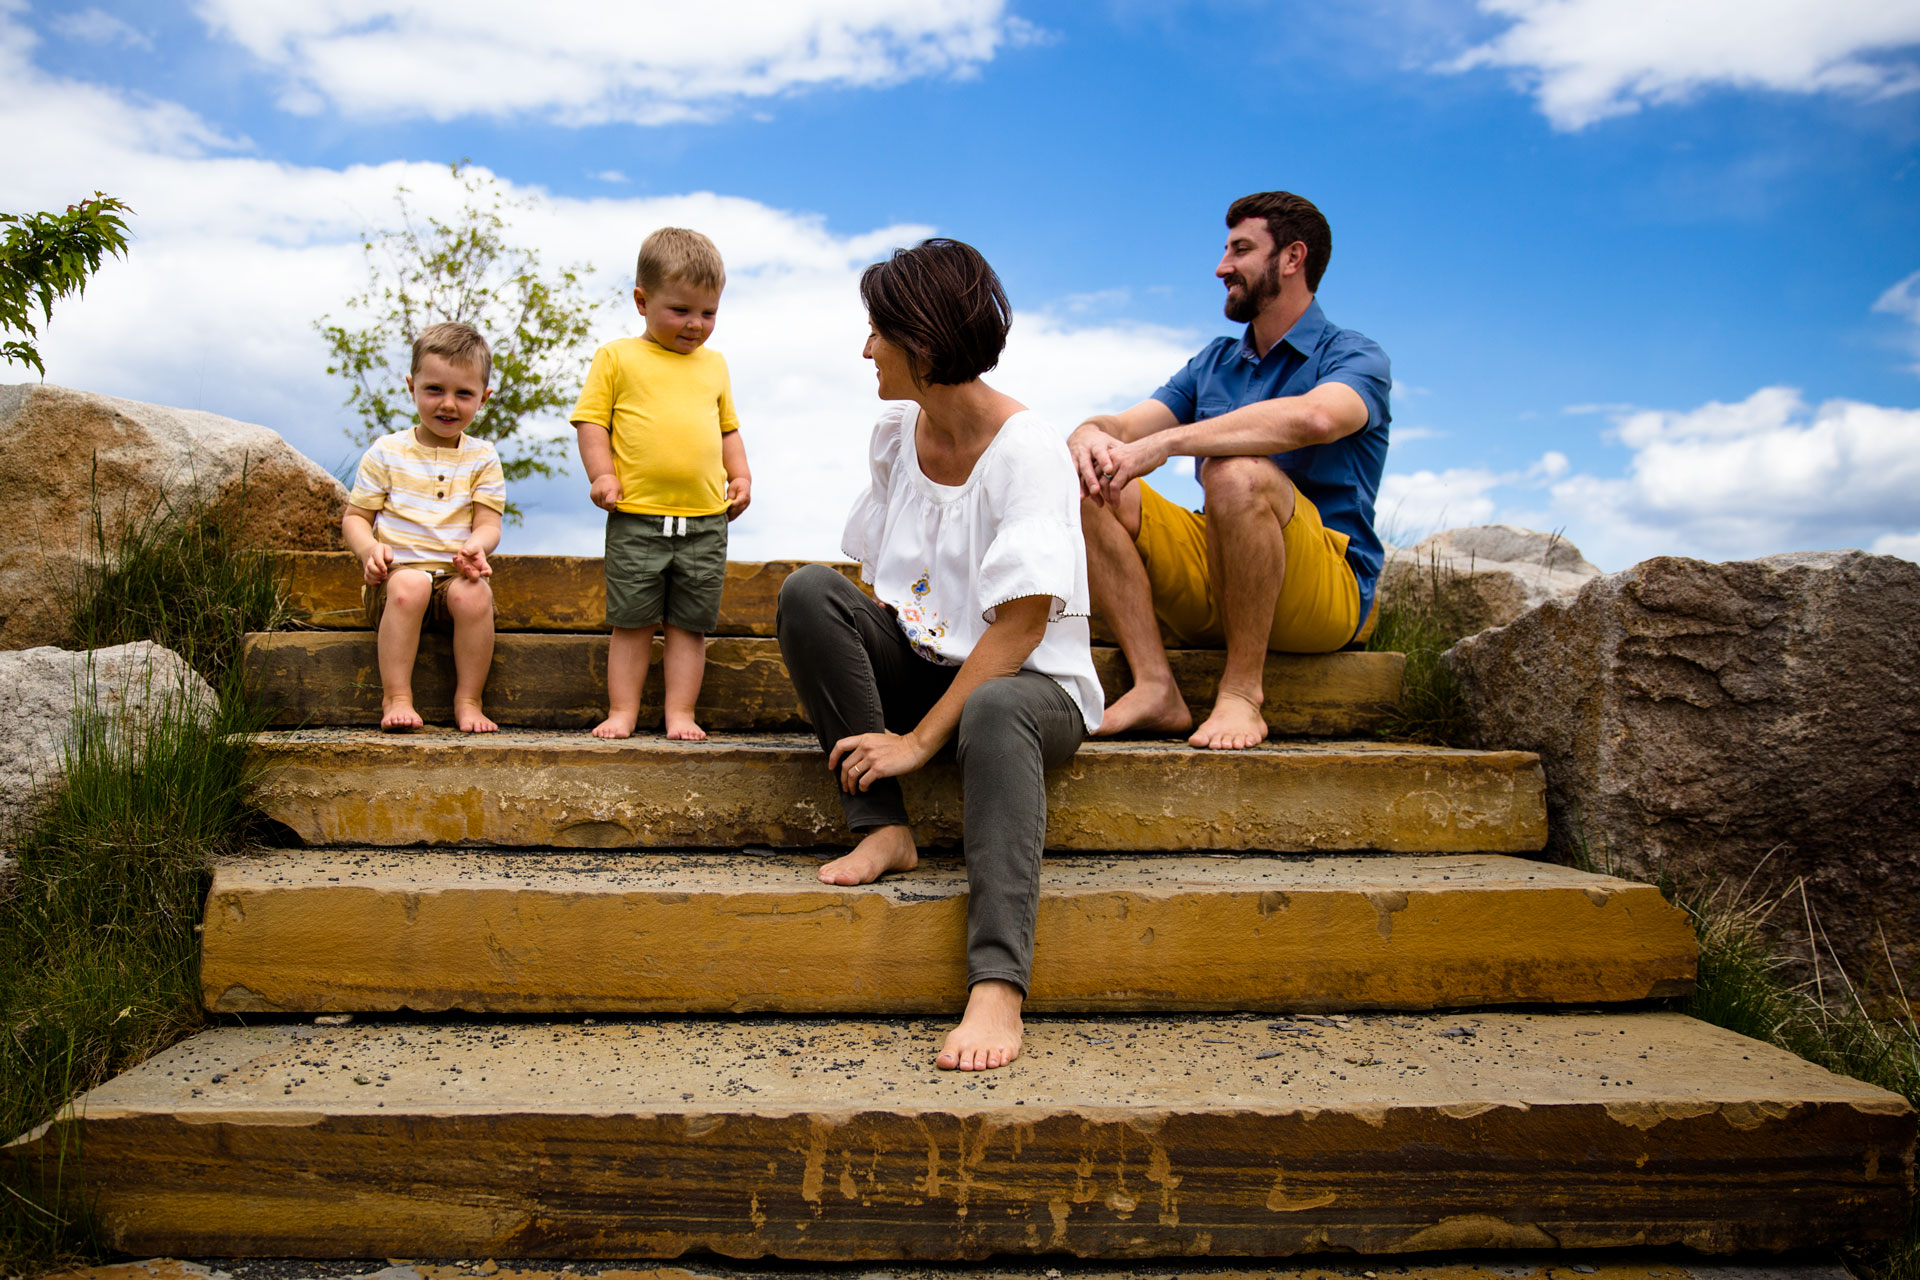 Family of four sitting on stone steps and looking at each other and smiling